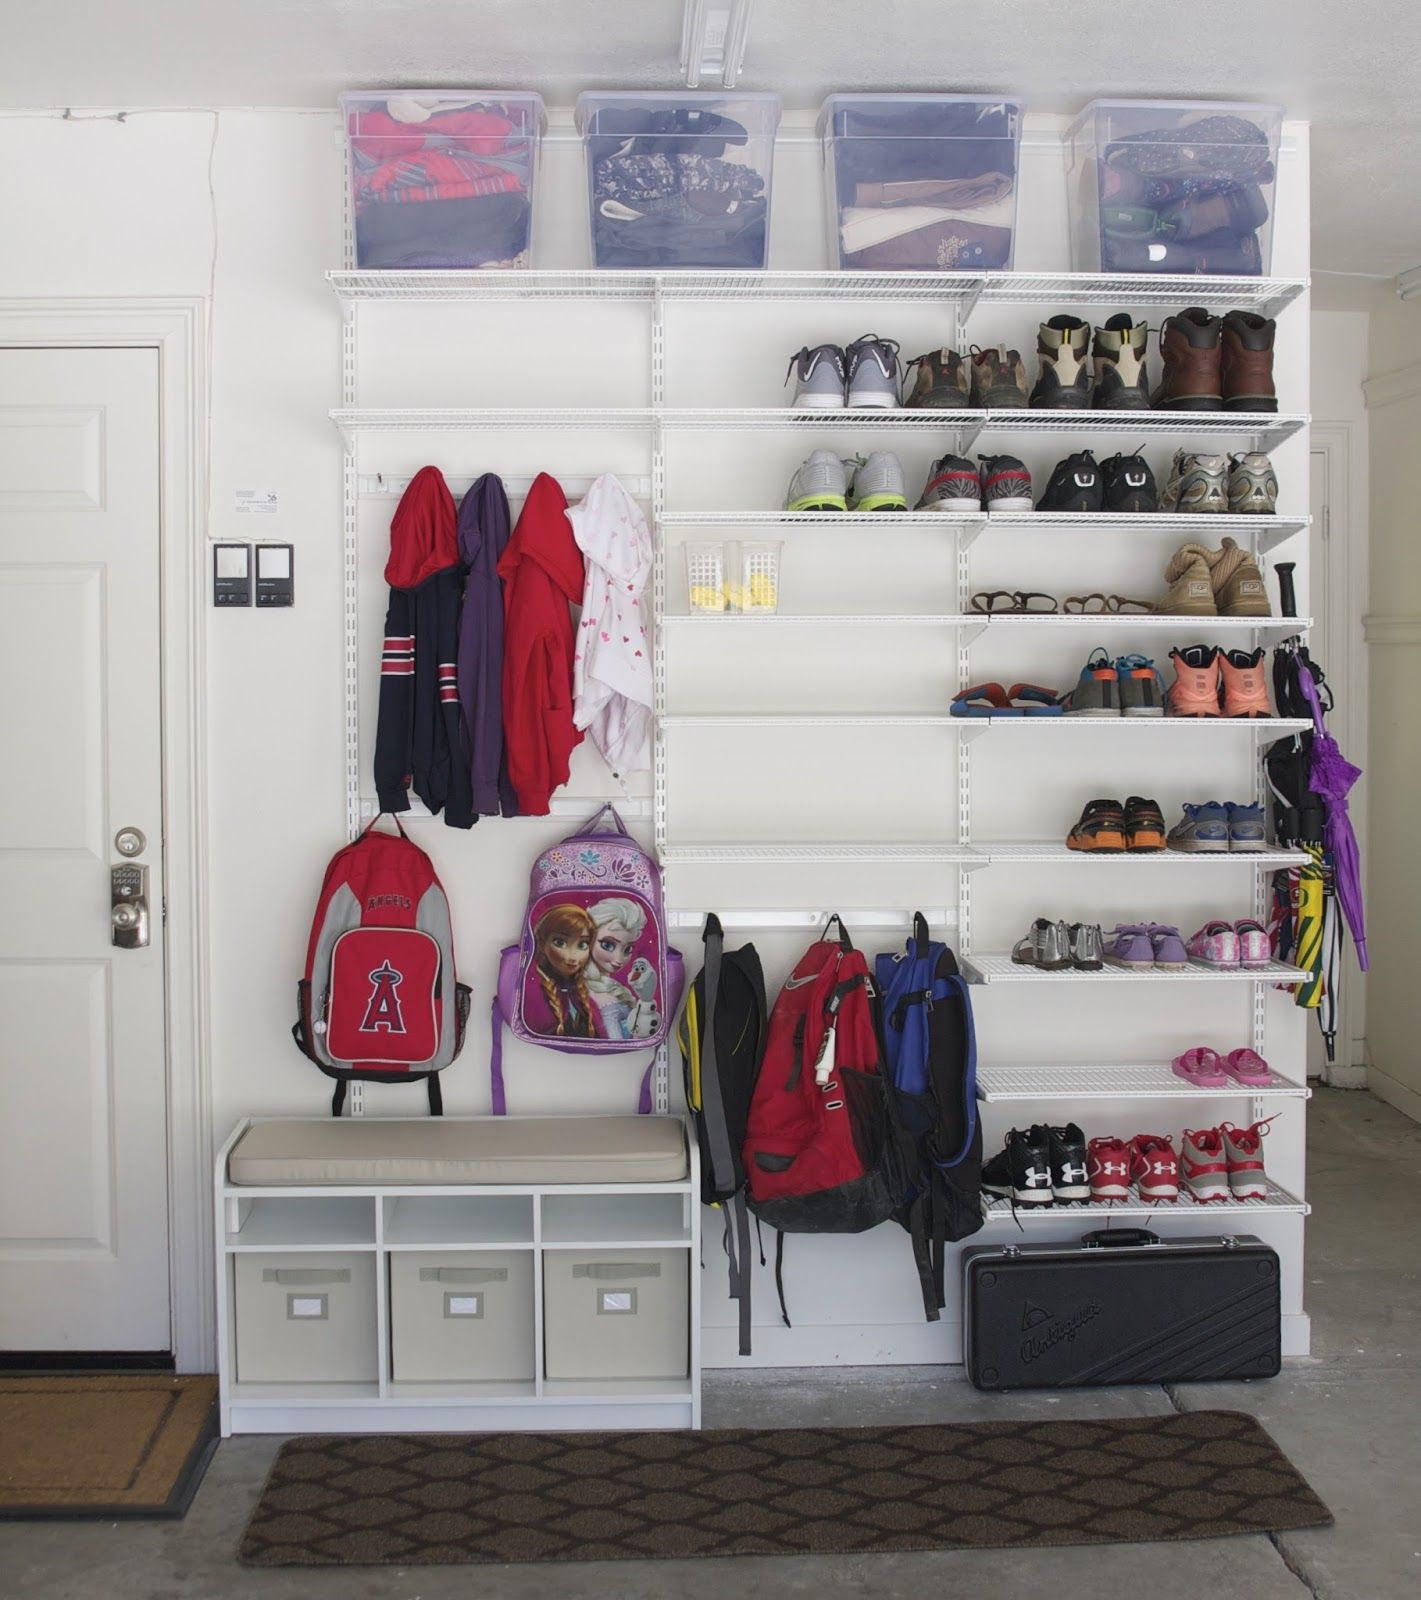 garage shoe rack this is fantastic although for the coats i would put a pole in so you can hang more than 3 plus storage ontop perfect